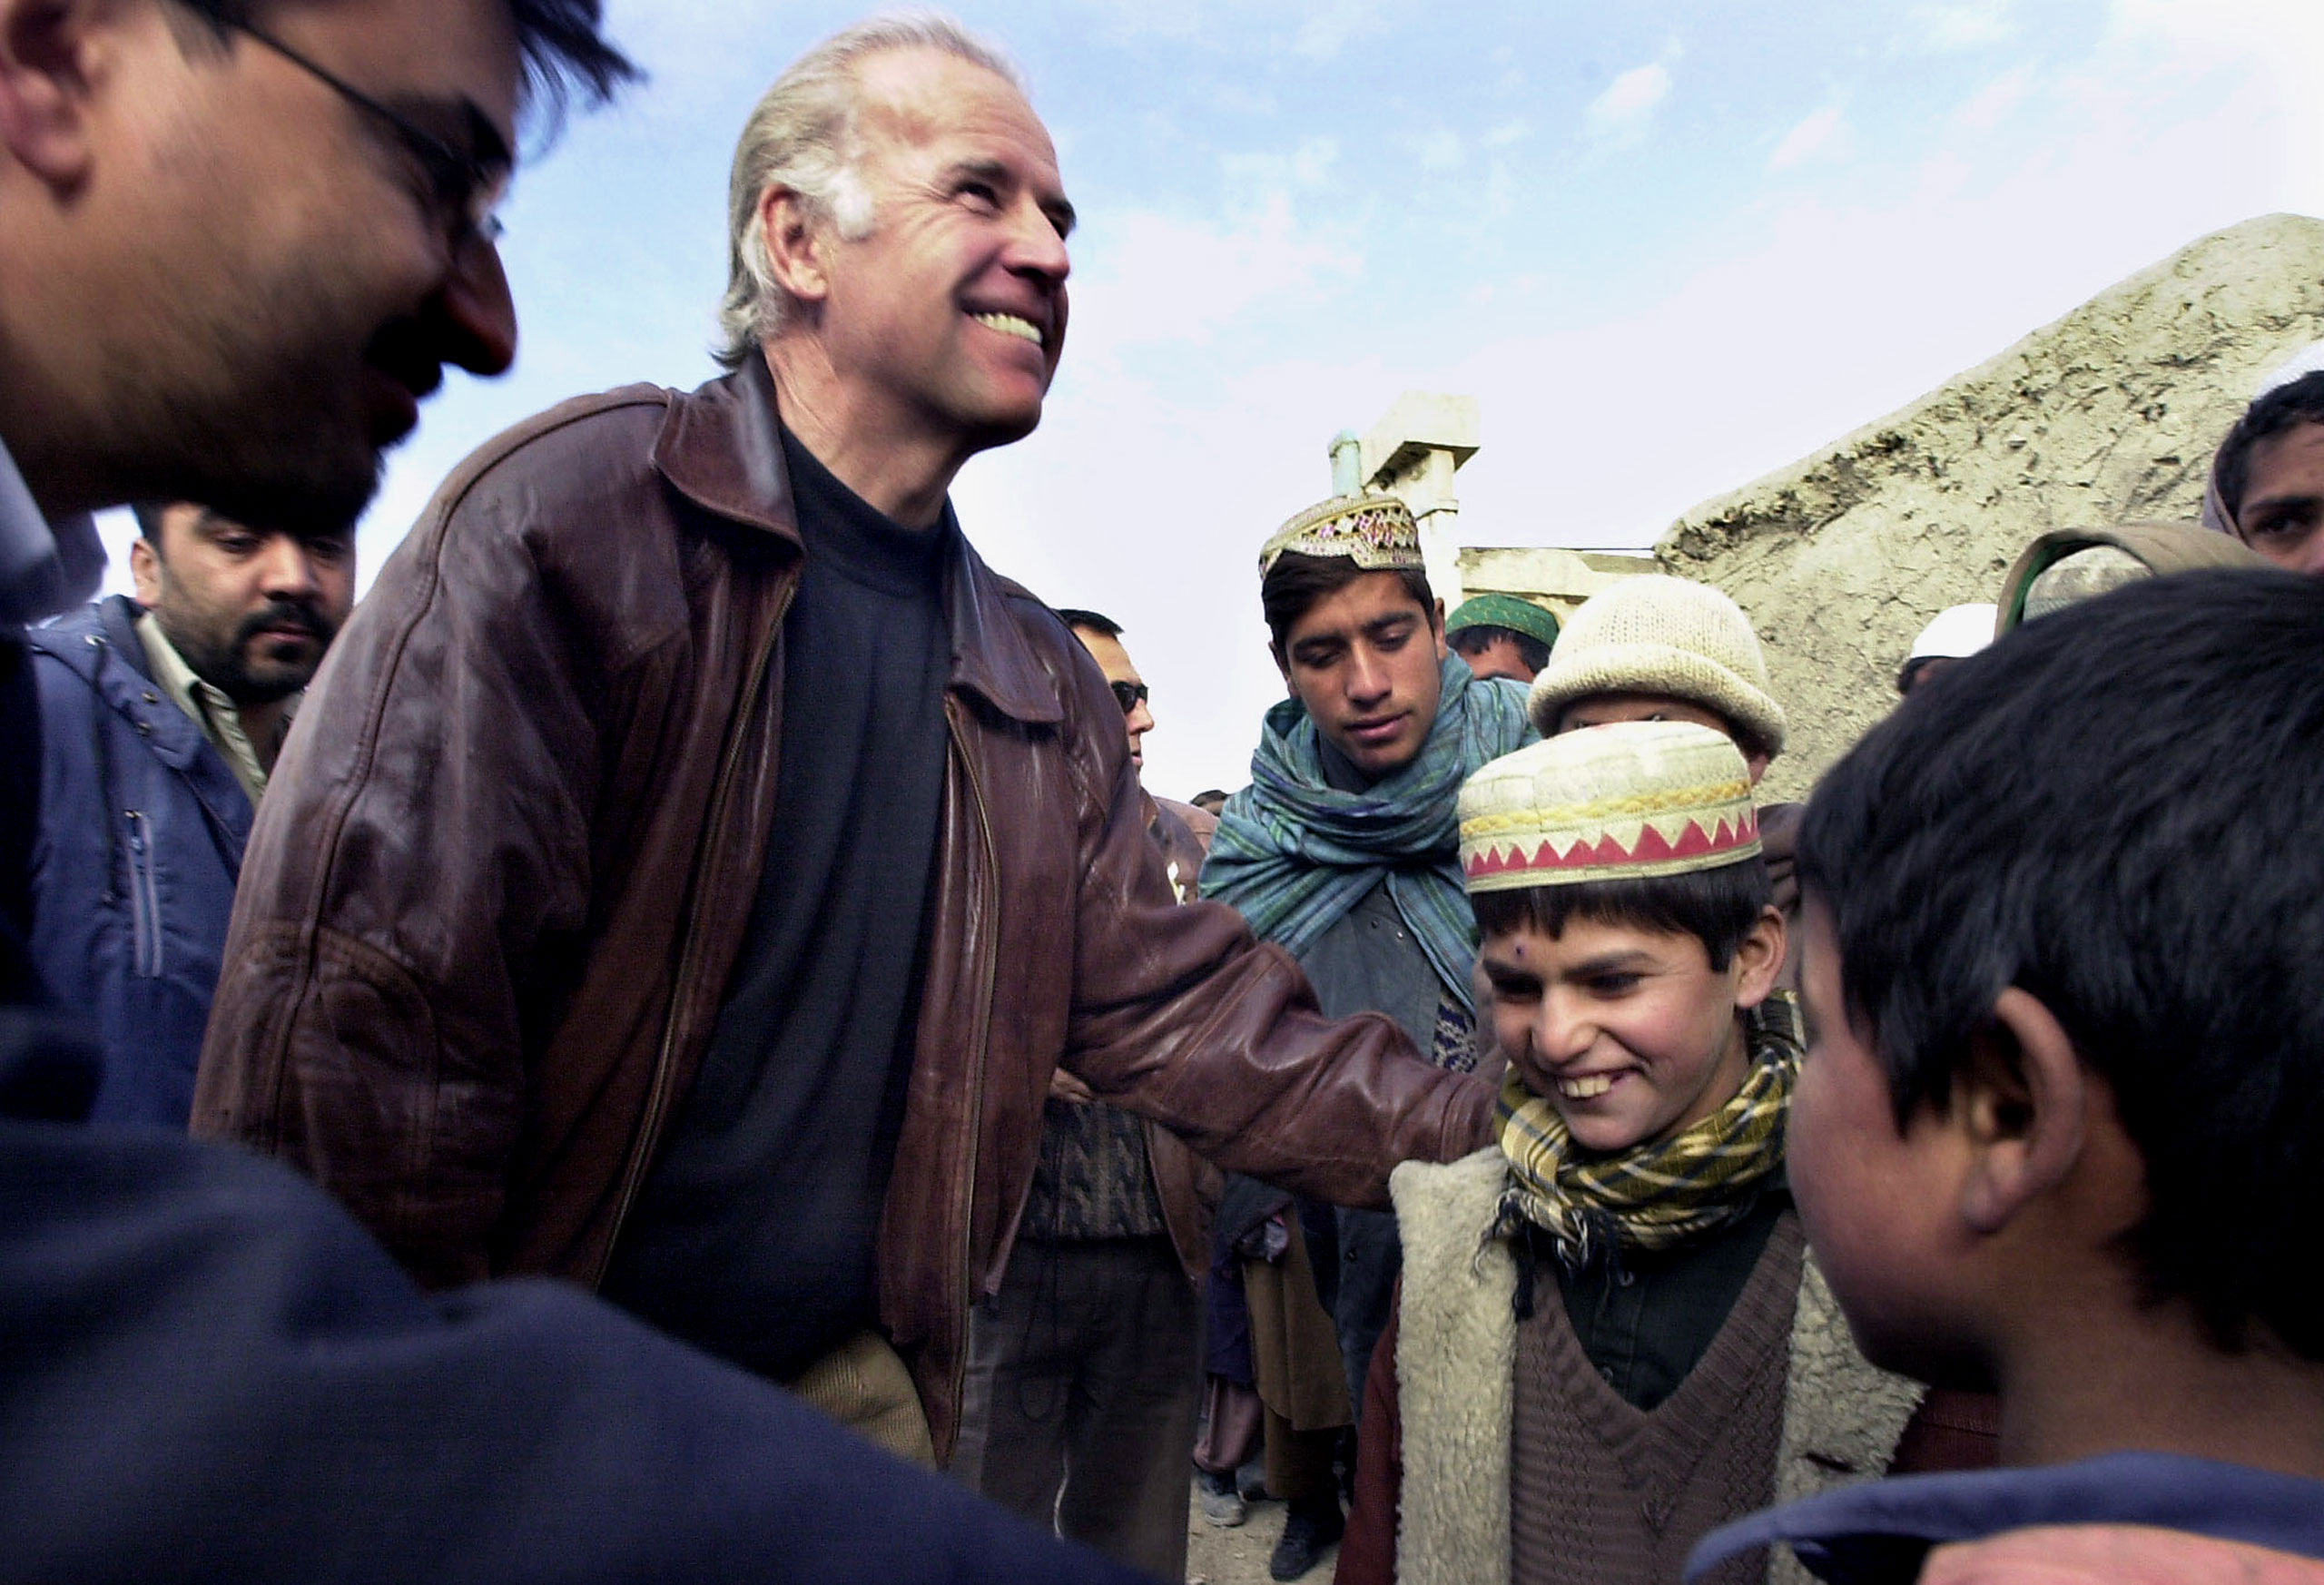 Joe Biden visits the old Soviet Embassy compound in Kabul on Jan. 11, 2002.